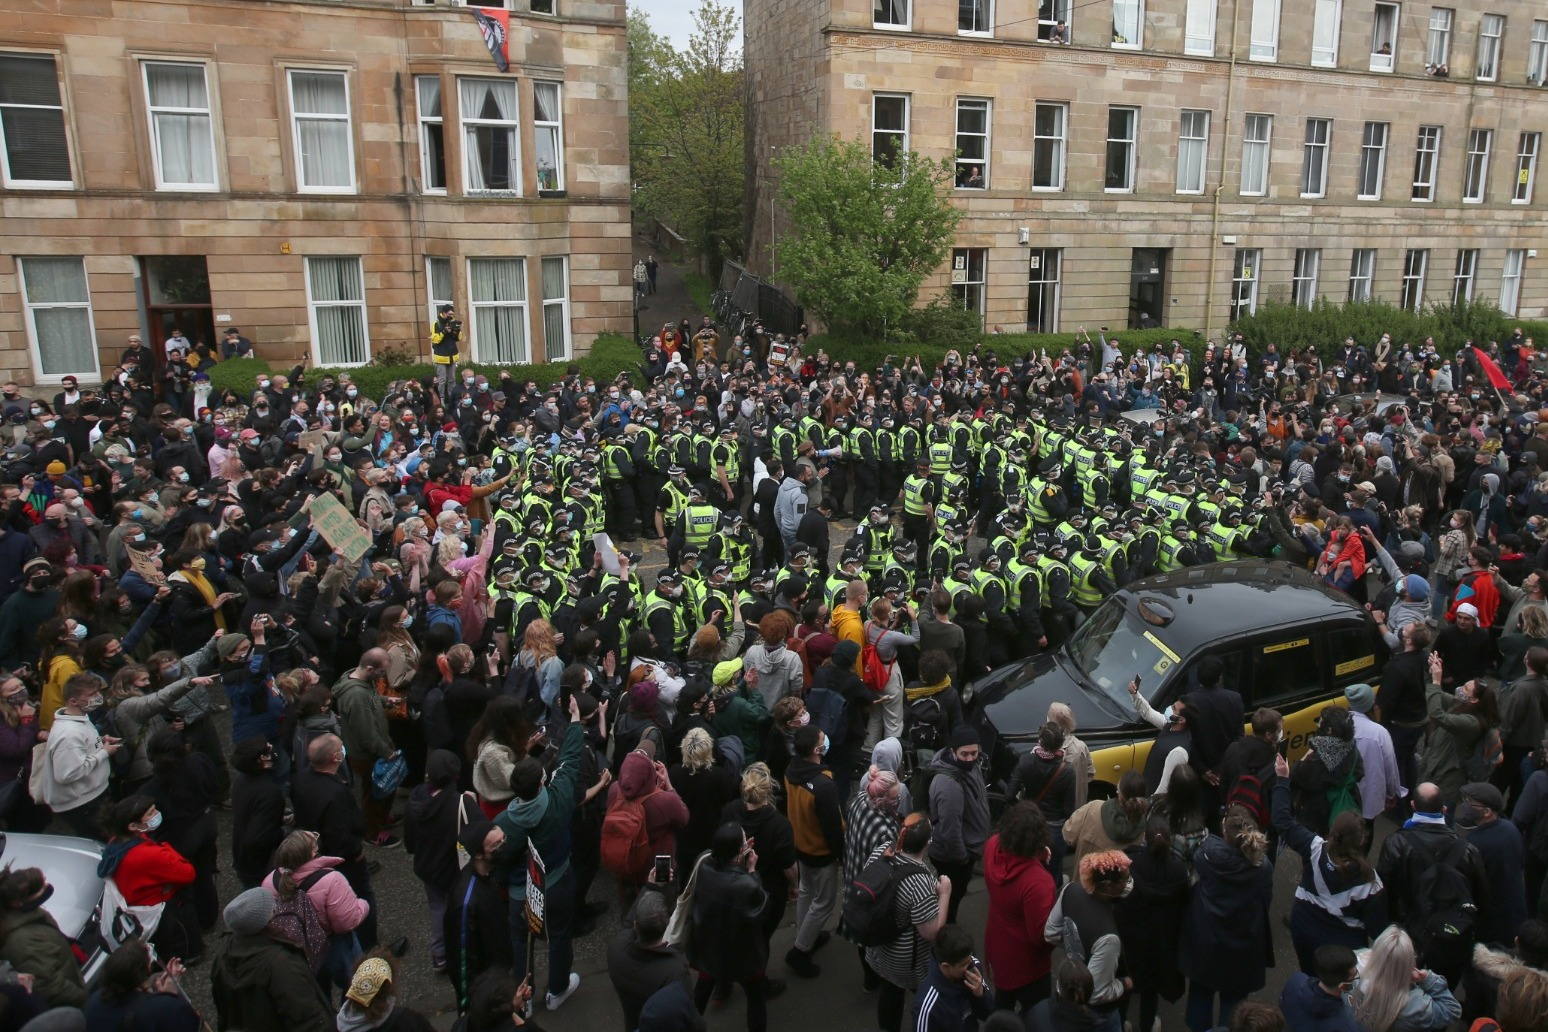 Charity considers legal action against Home Office over Glasgow immigration raid